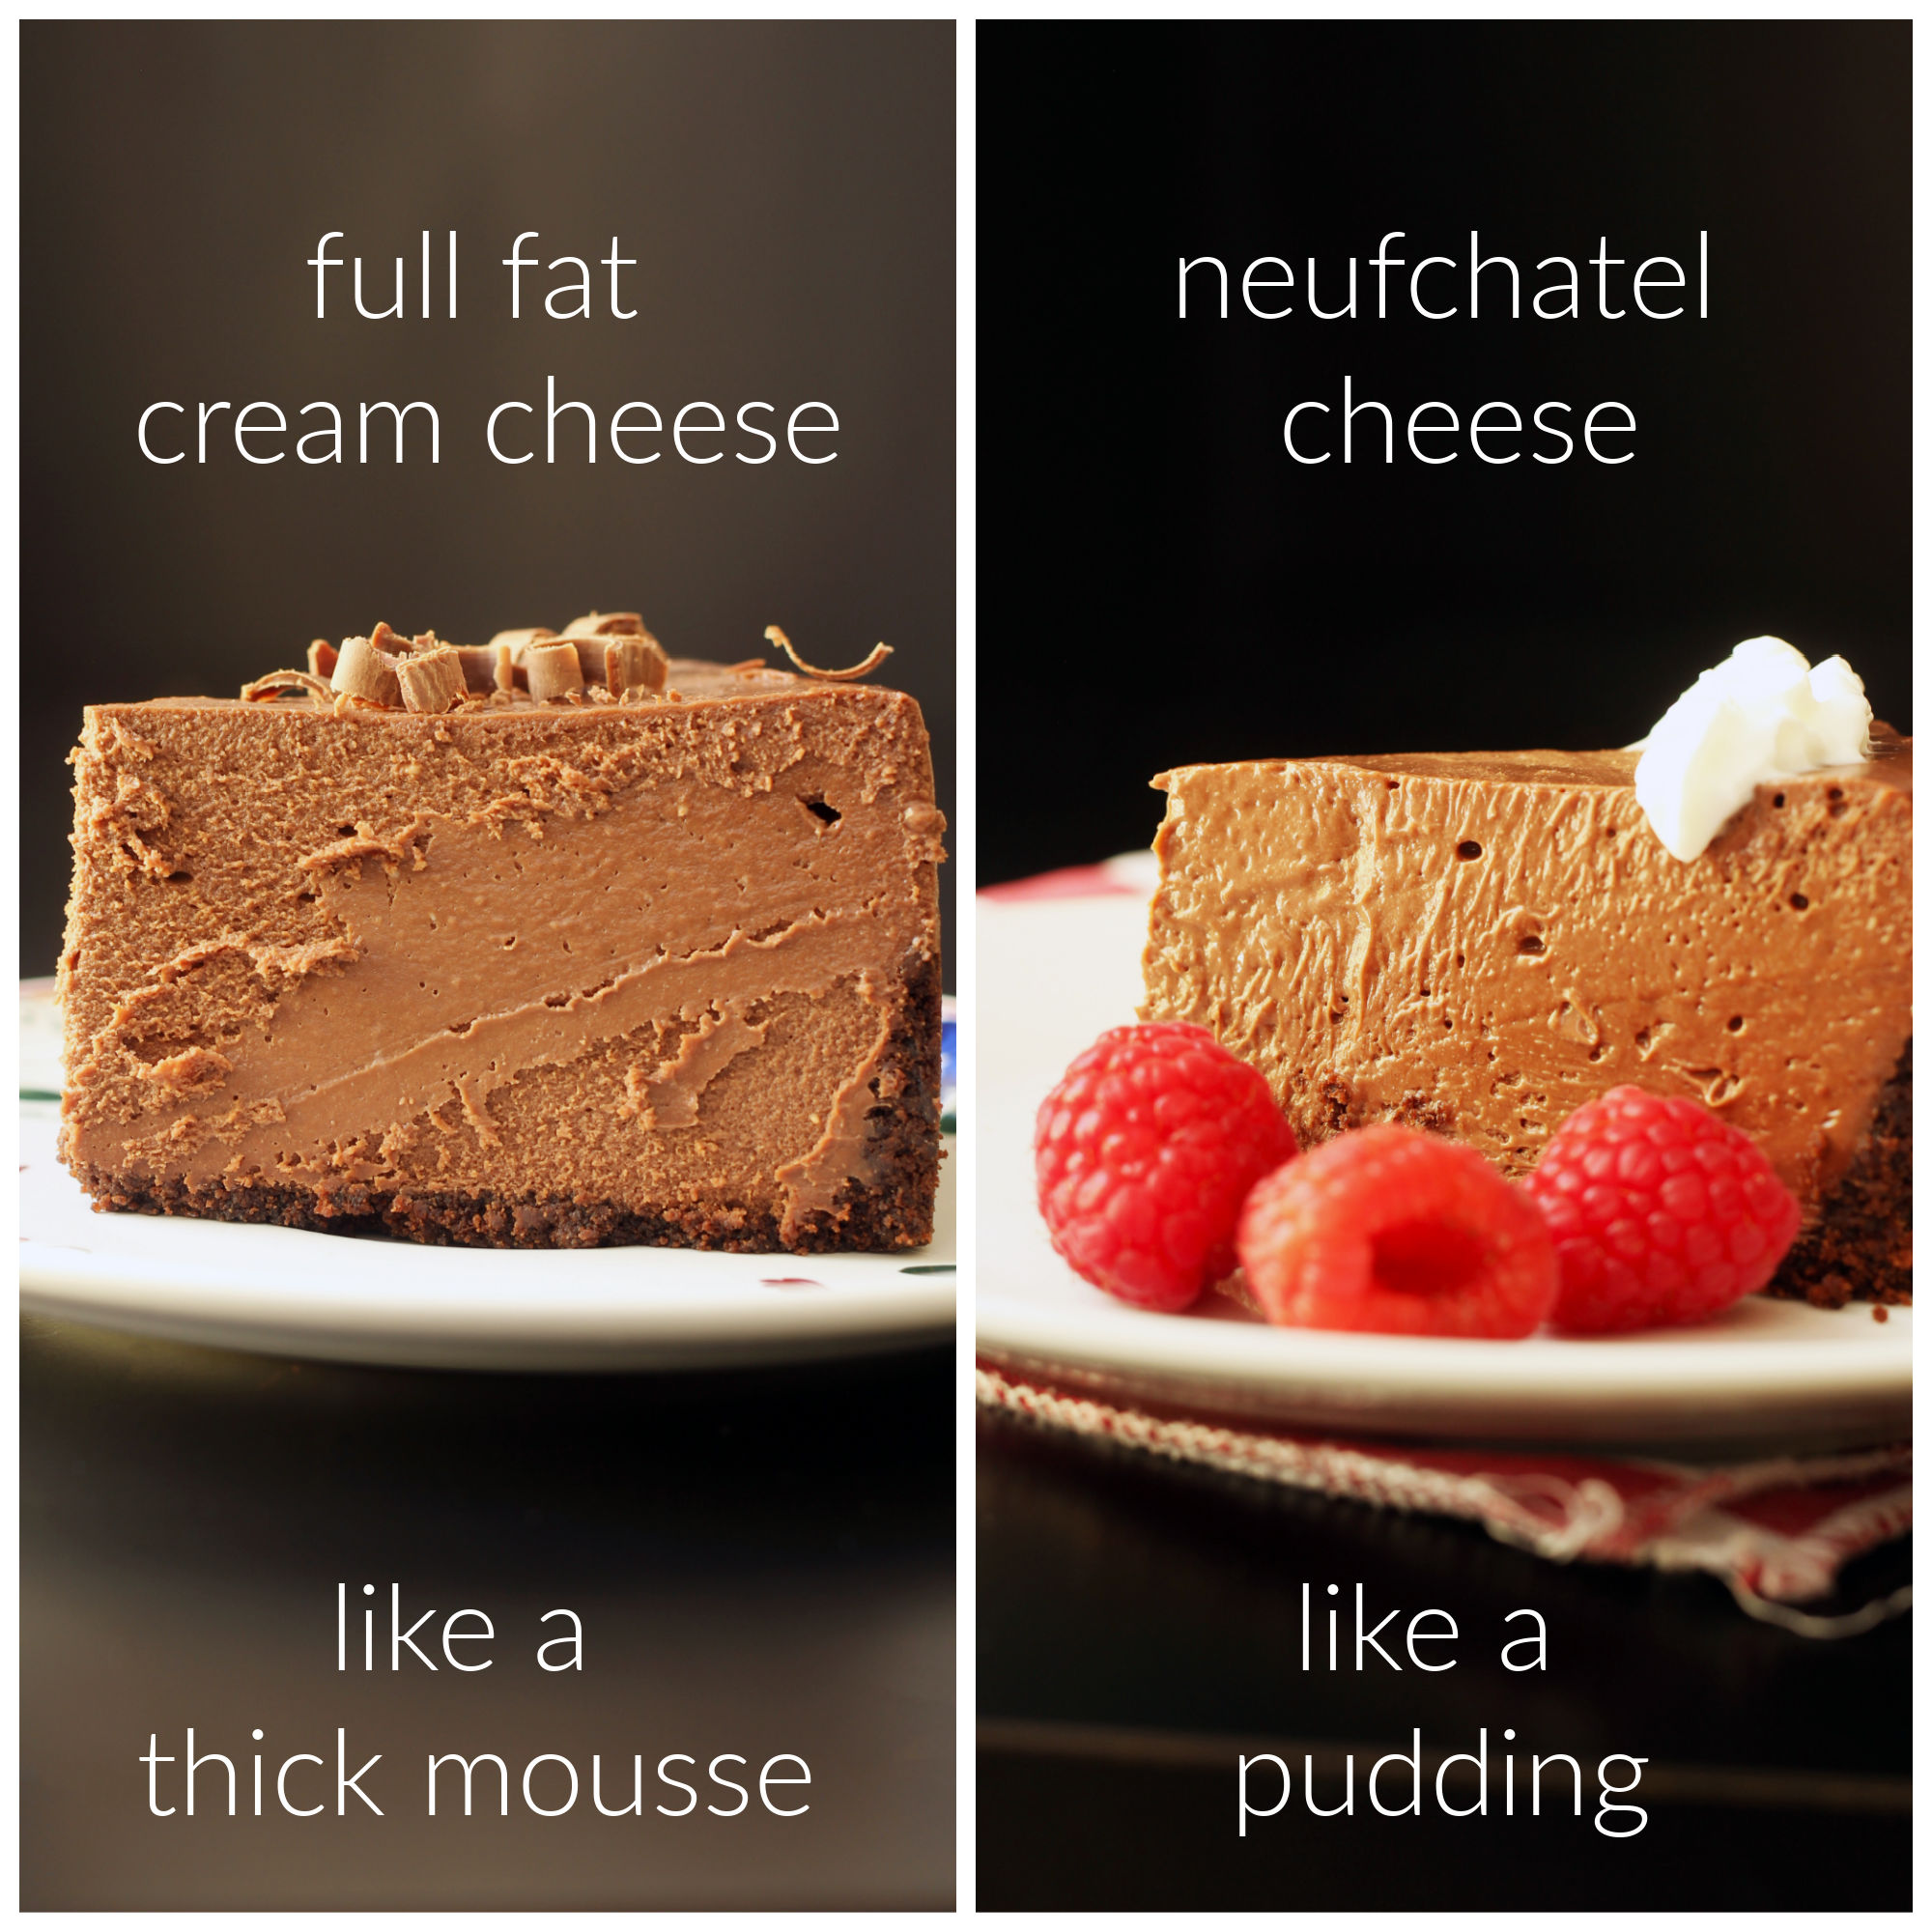 cheesecakes made with different cream cheese